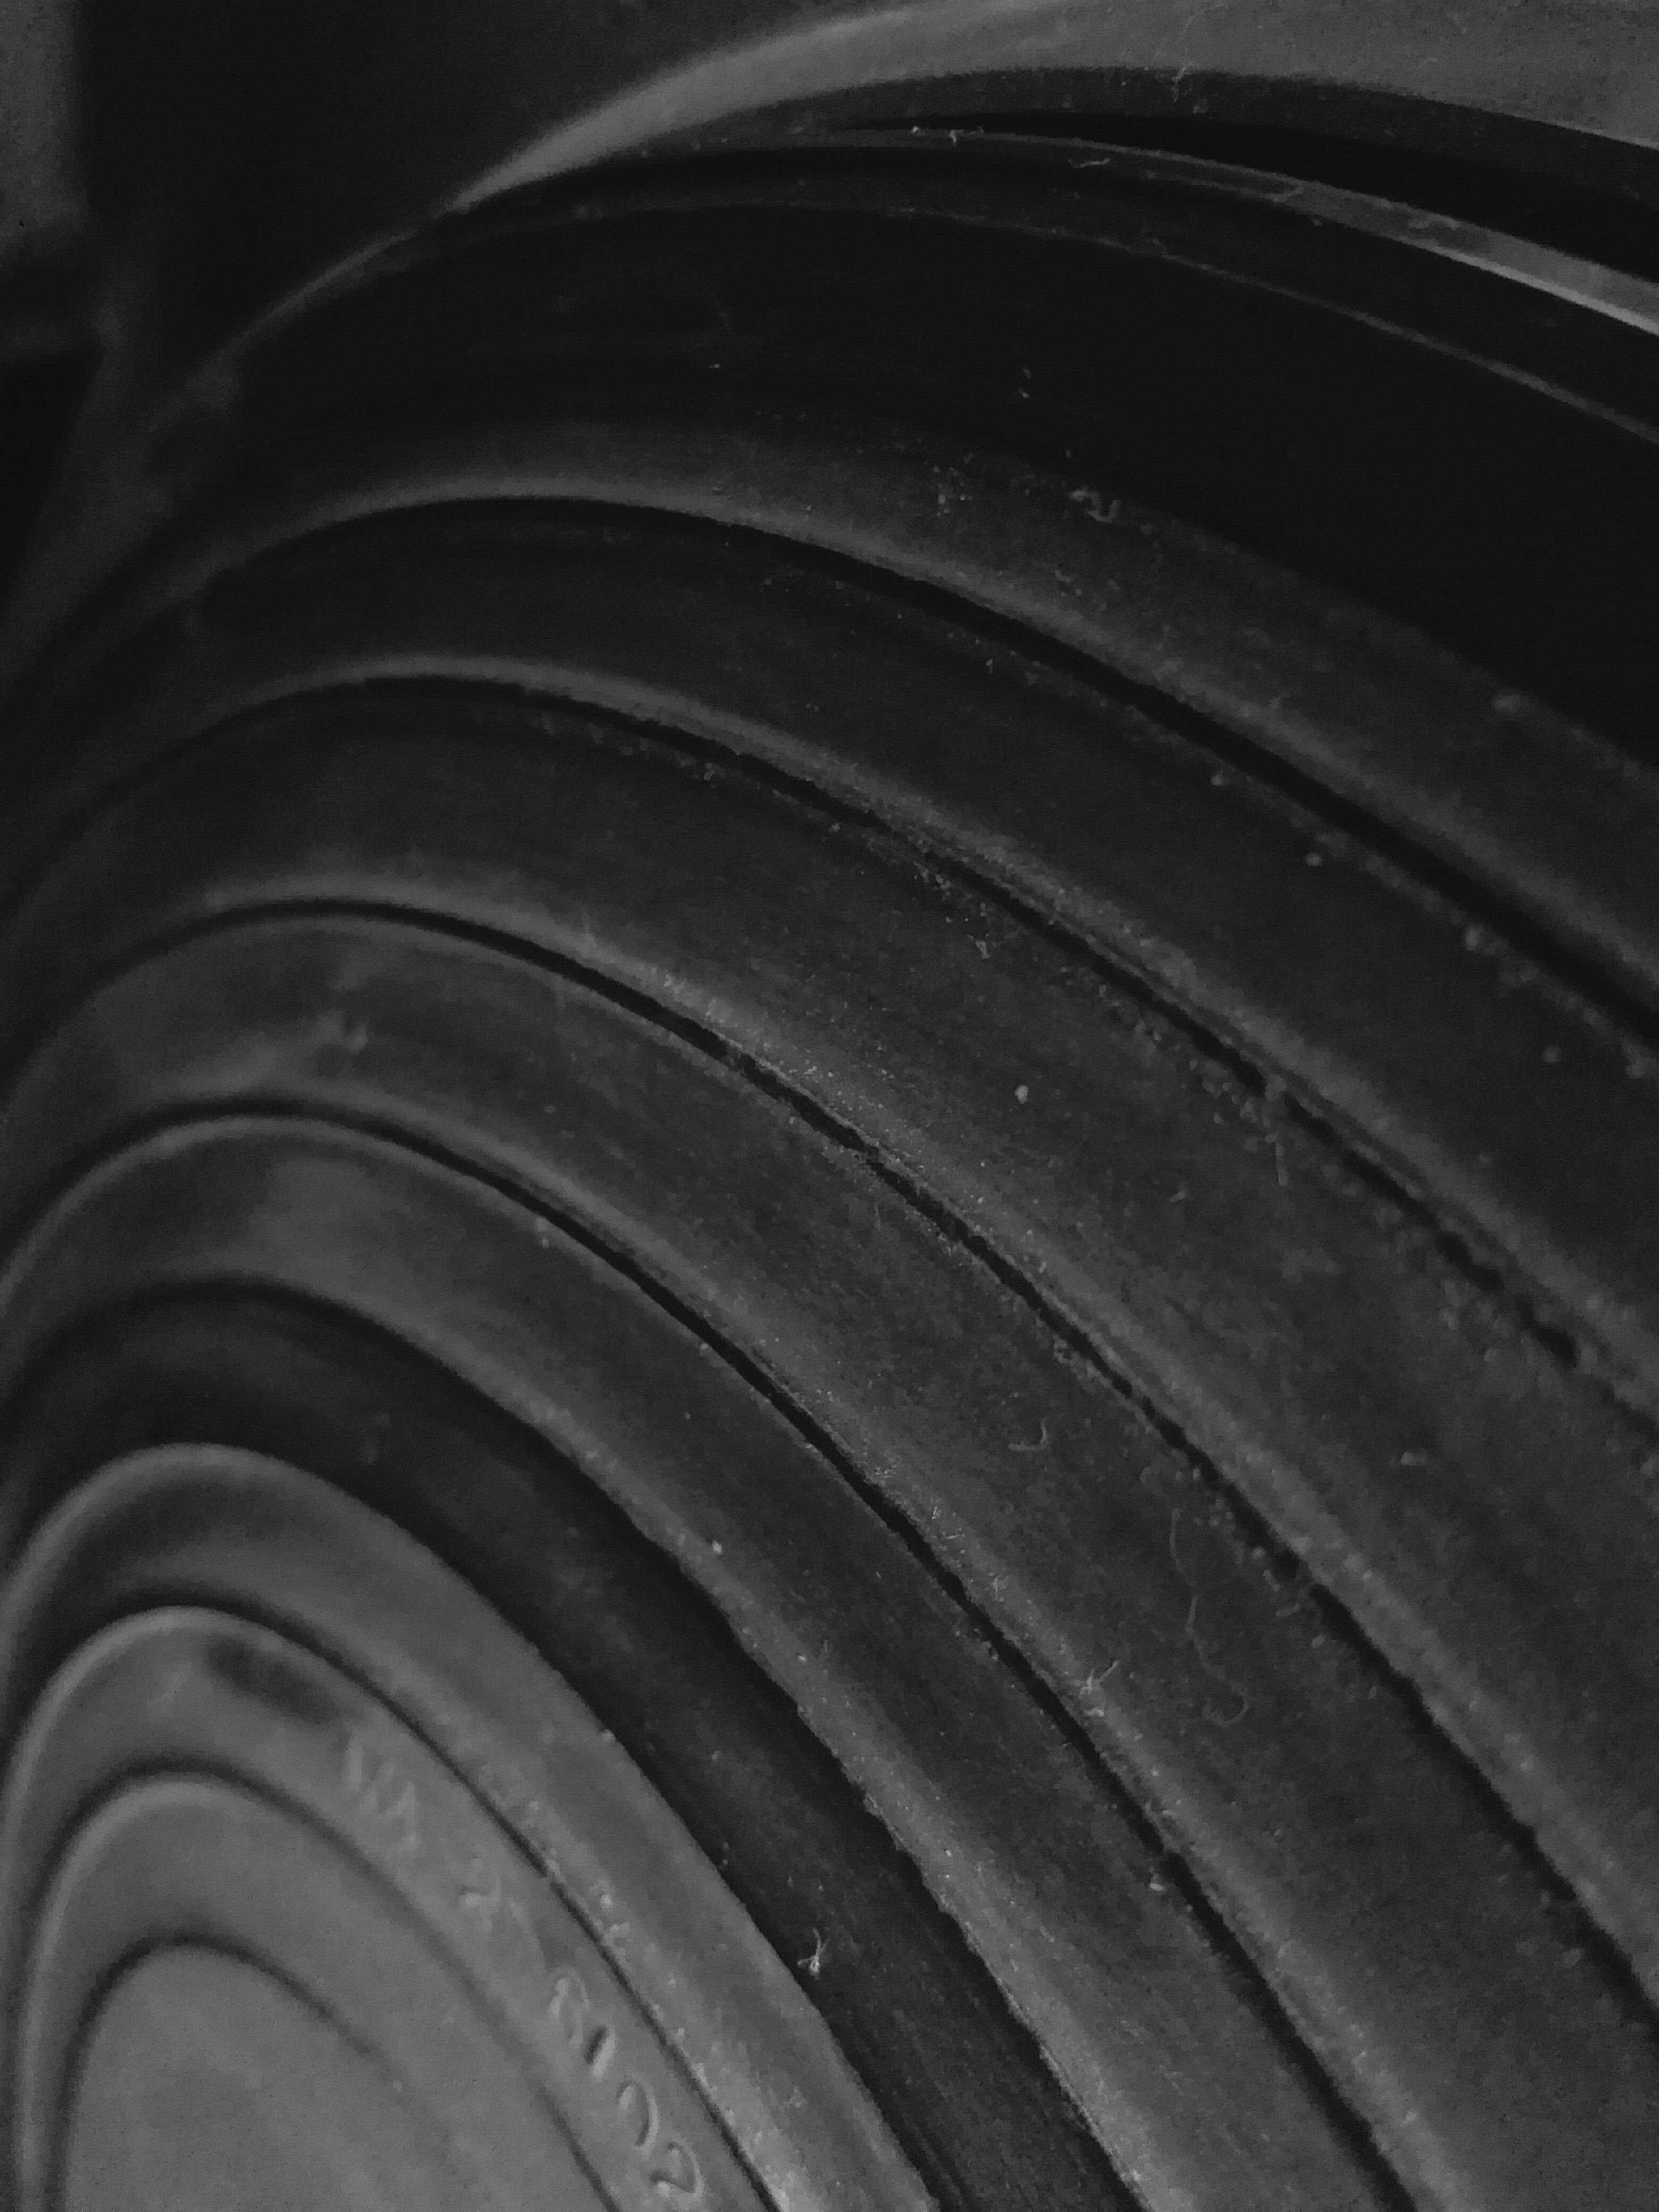 no people, indoors, food and drink, barrel, close-up, stack, wine cask, industry, tire, day, freshness